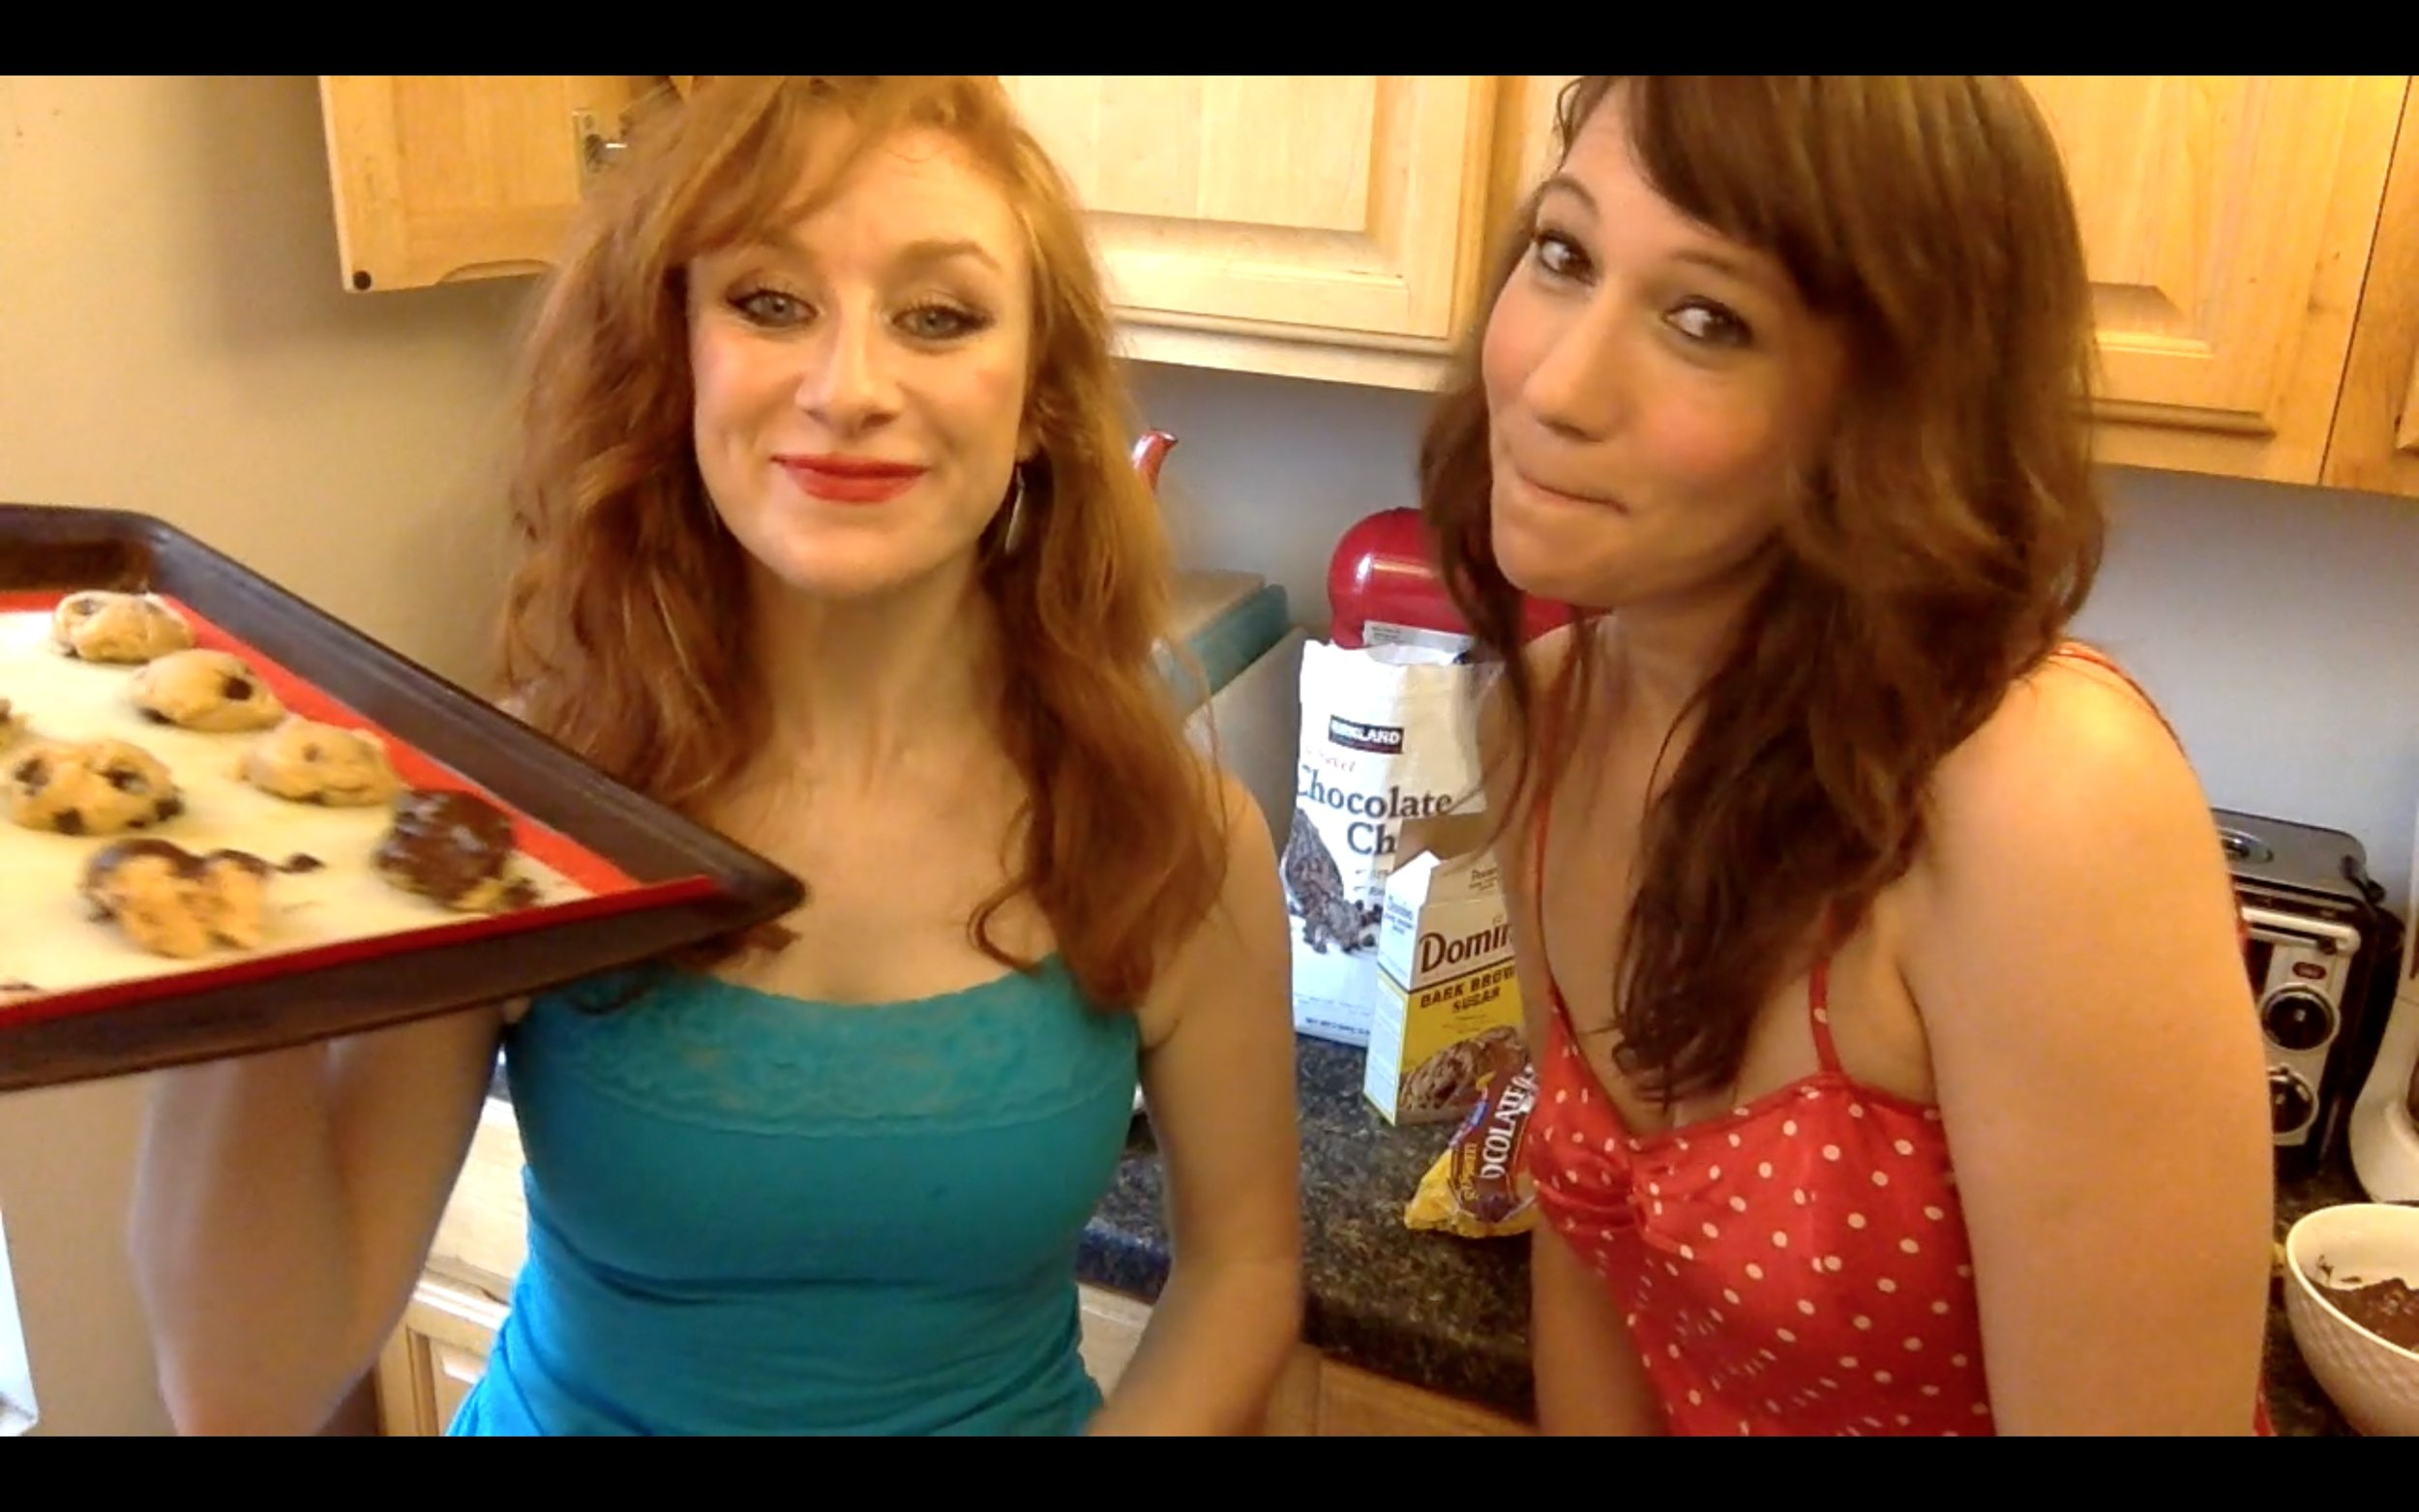 daliya (left) went on to host a cooking show on youtube.com.